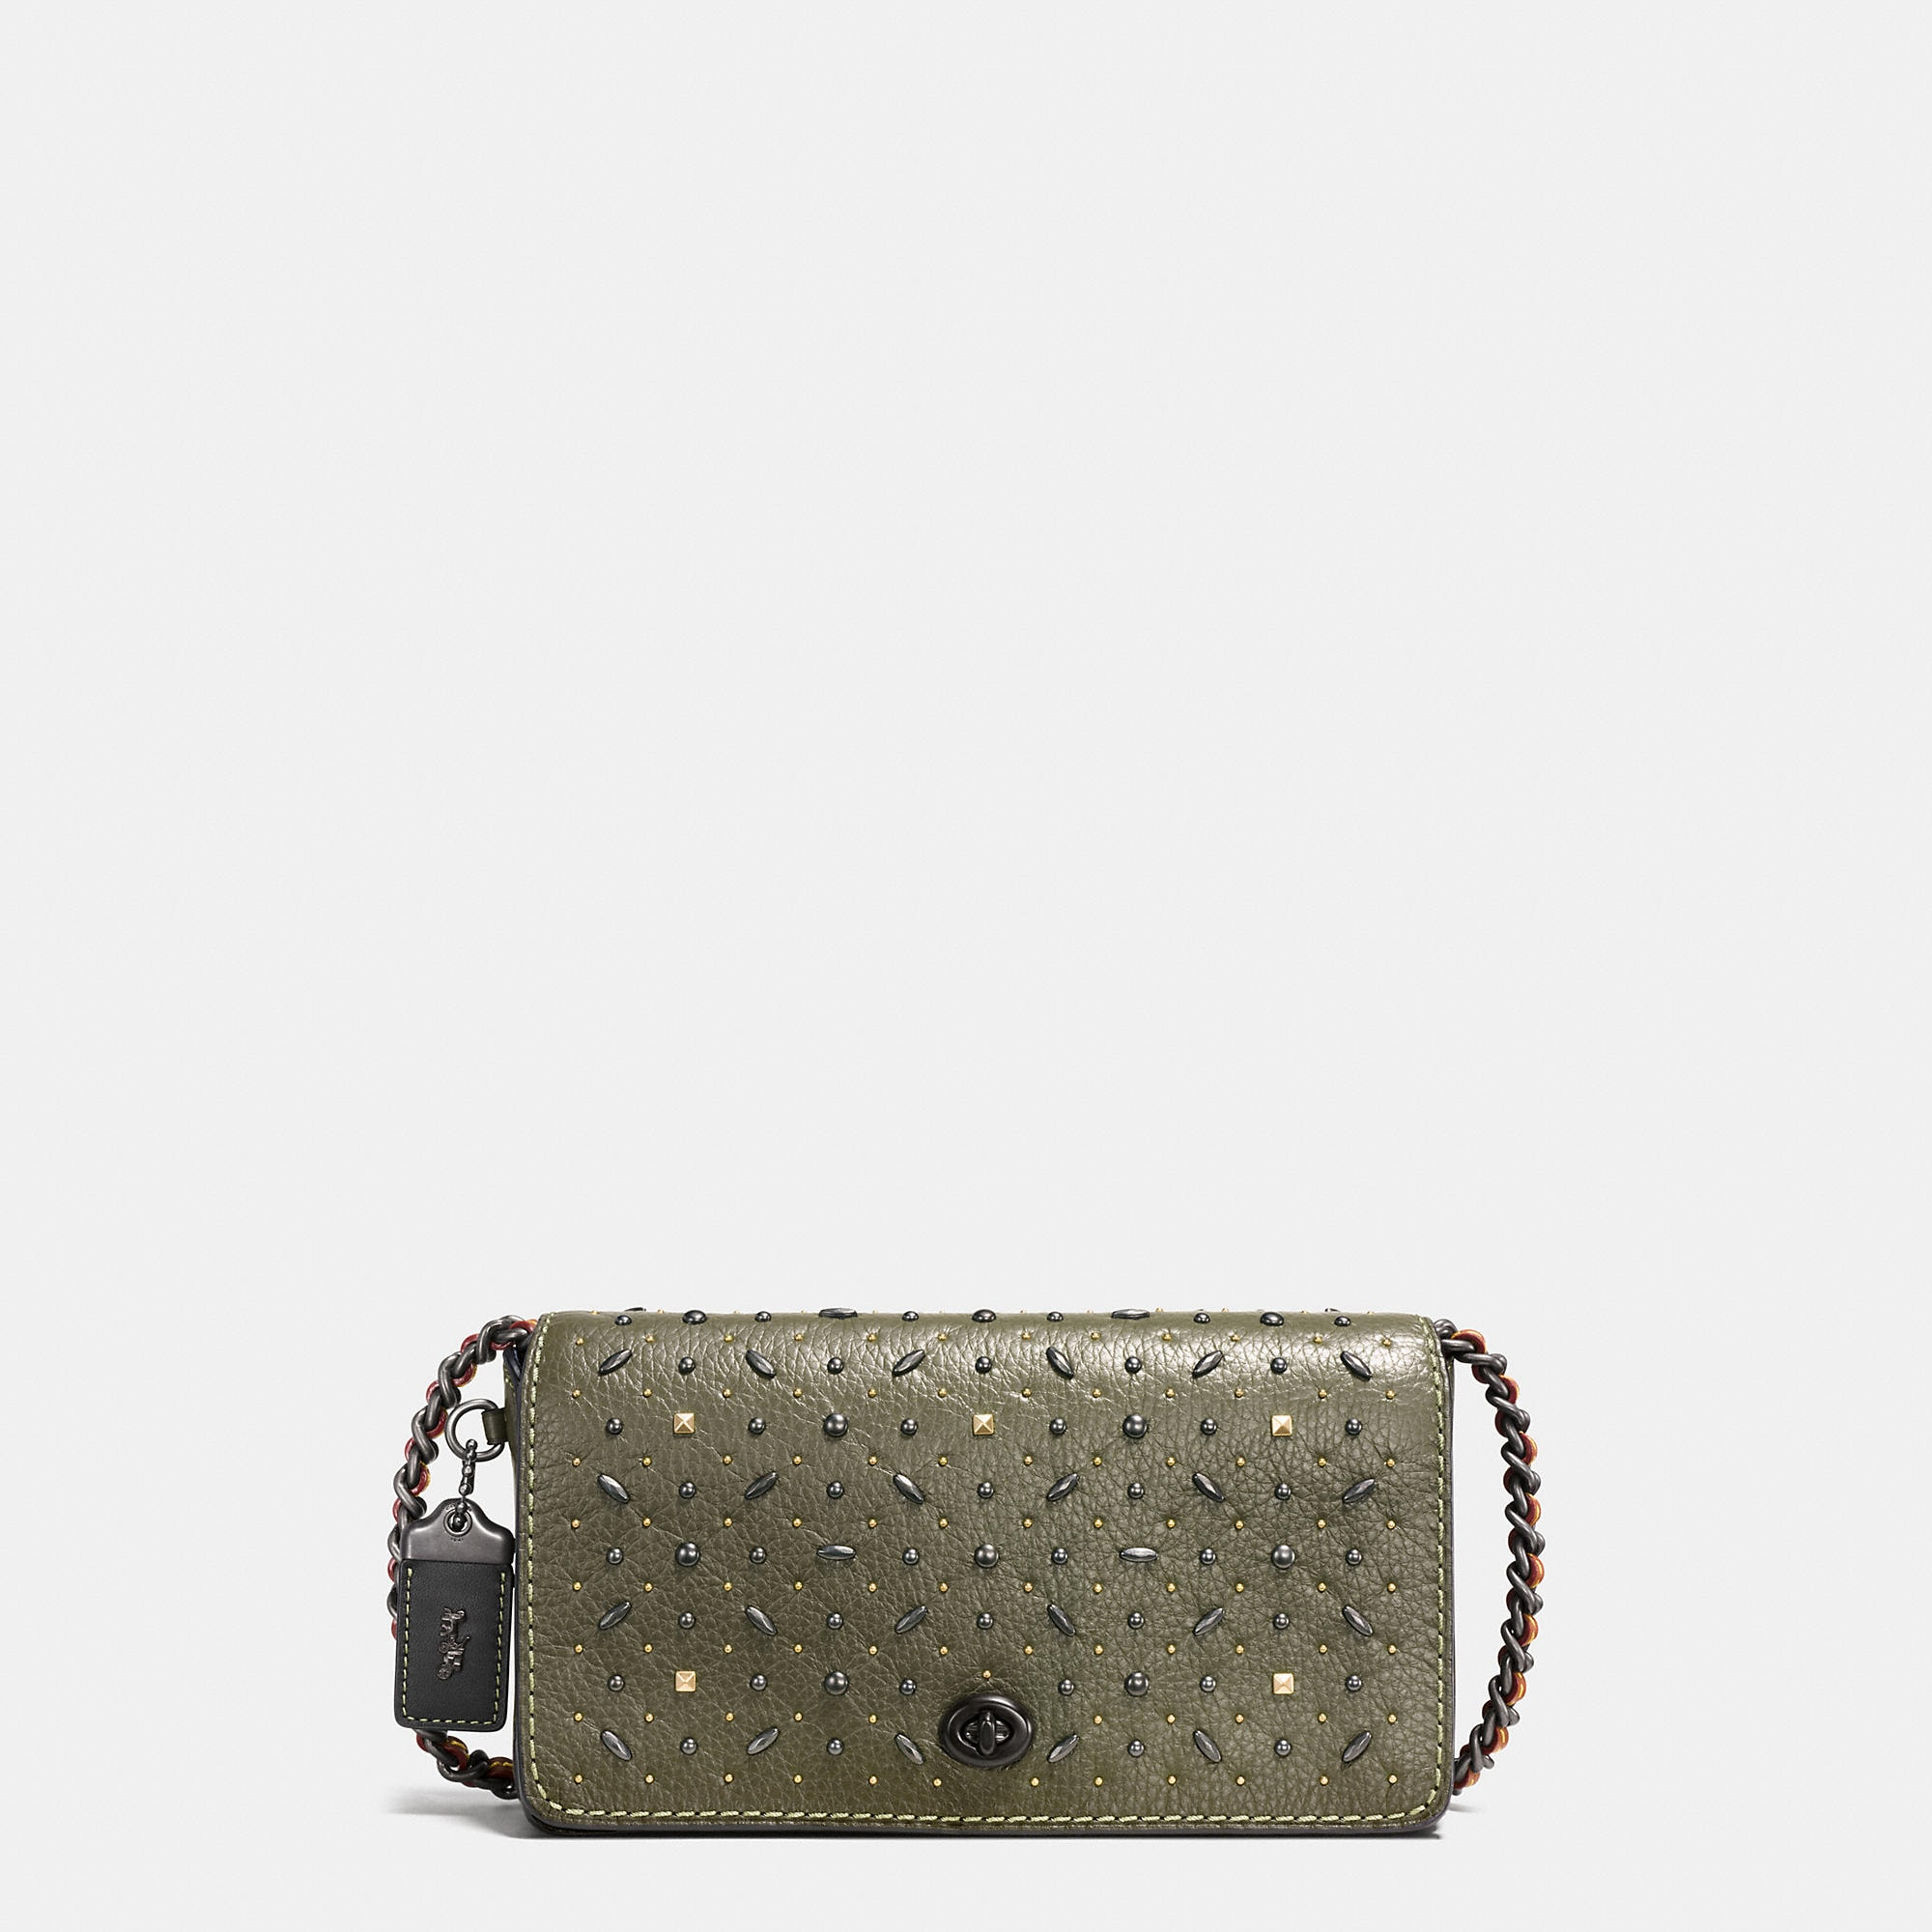 Coach Rivets Dinky Crossbody In Pebble Leather